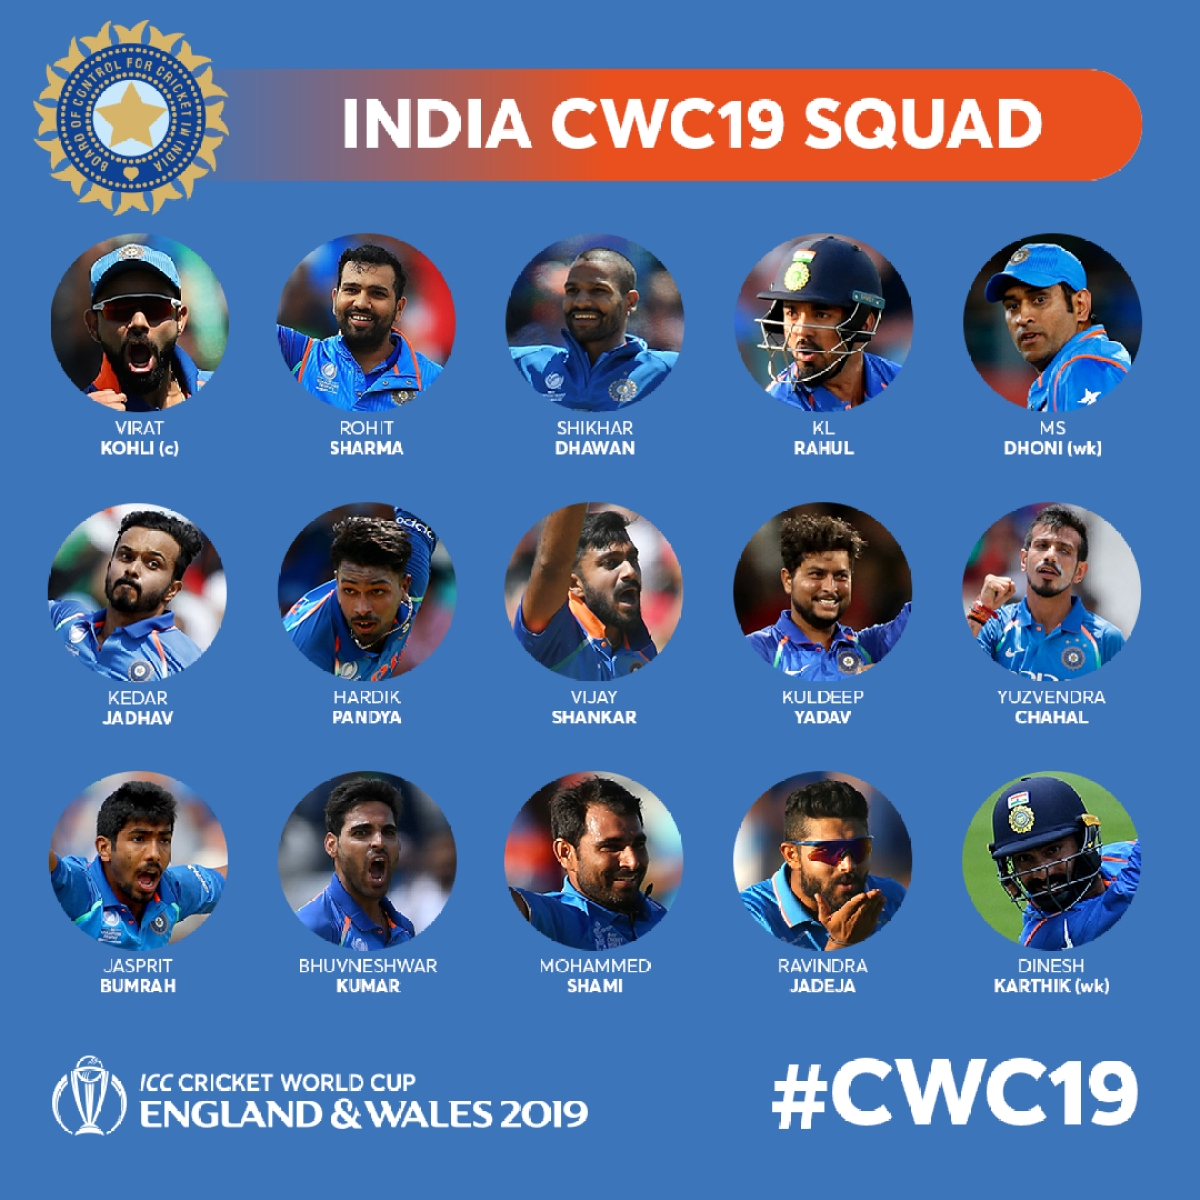 india s squad for the icc cricket world cup 2019